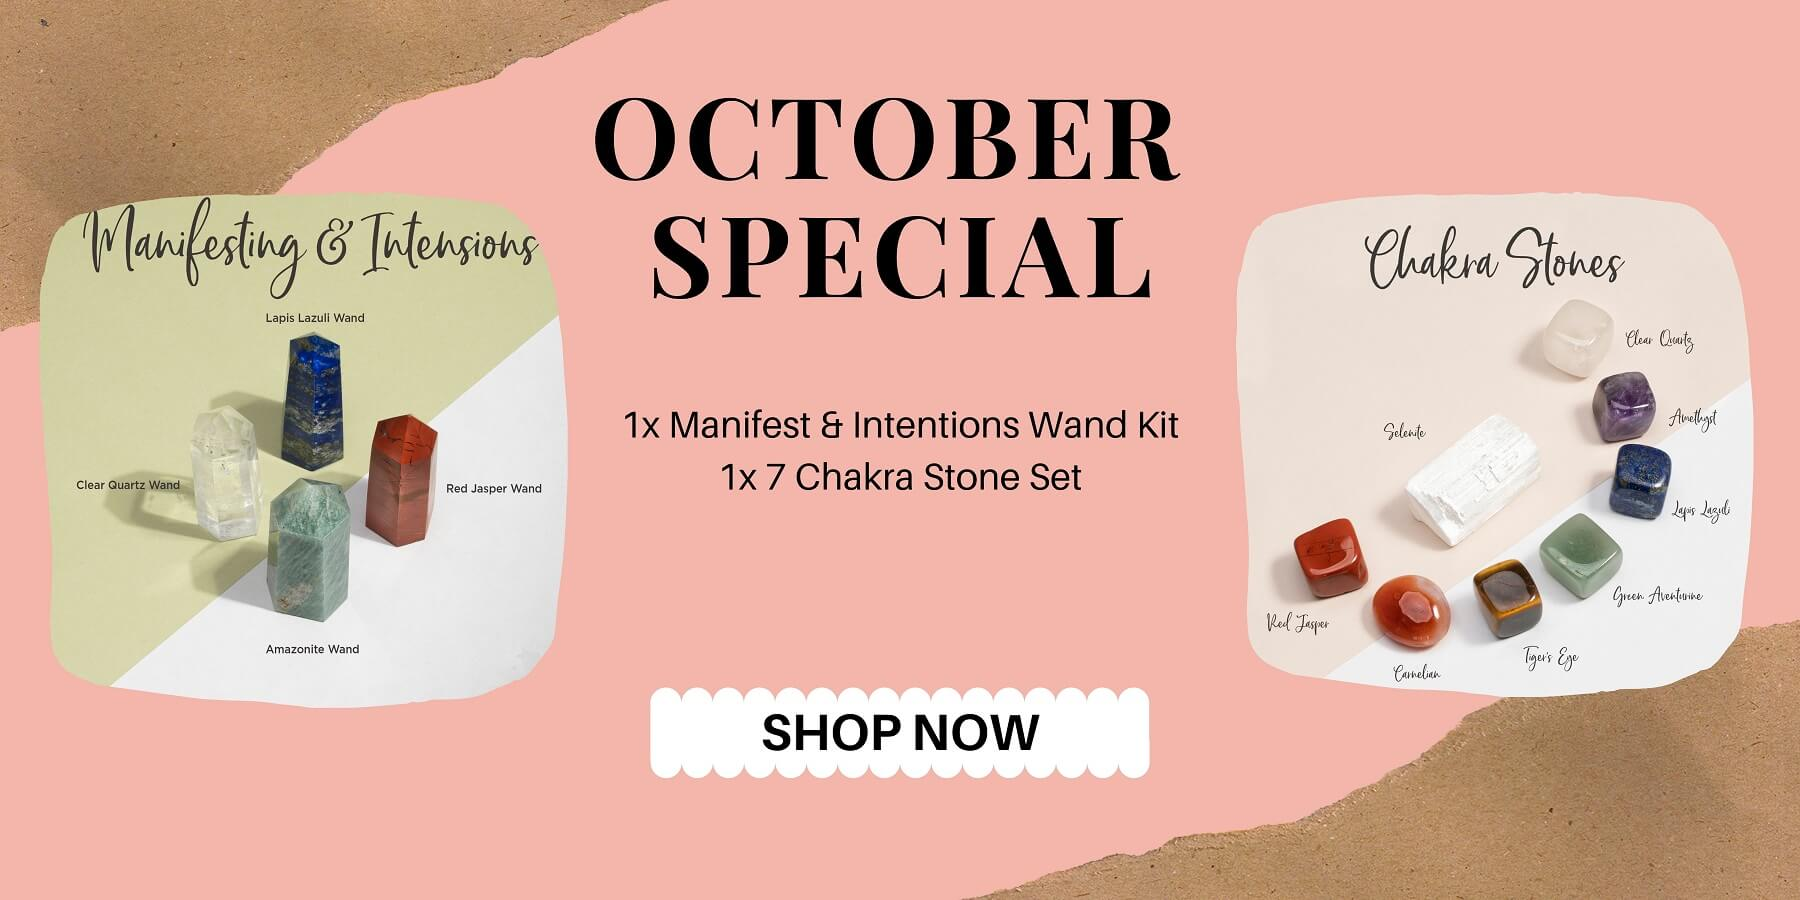 october special - manifest and intensions